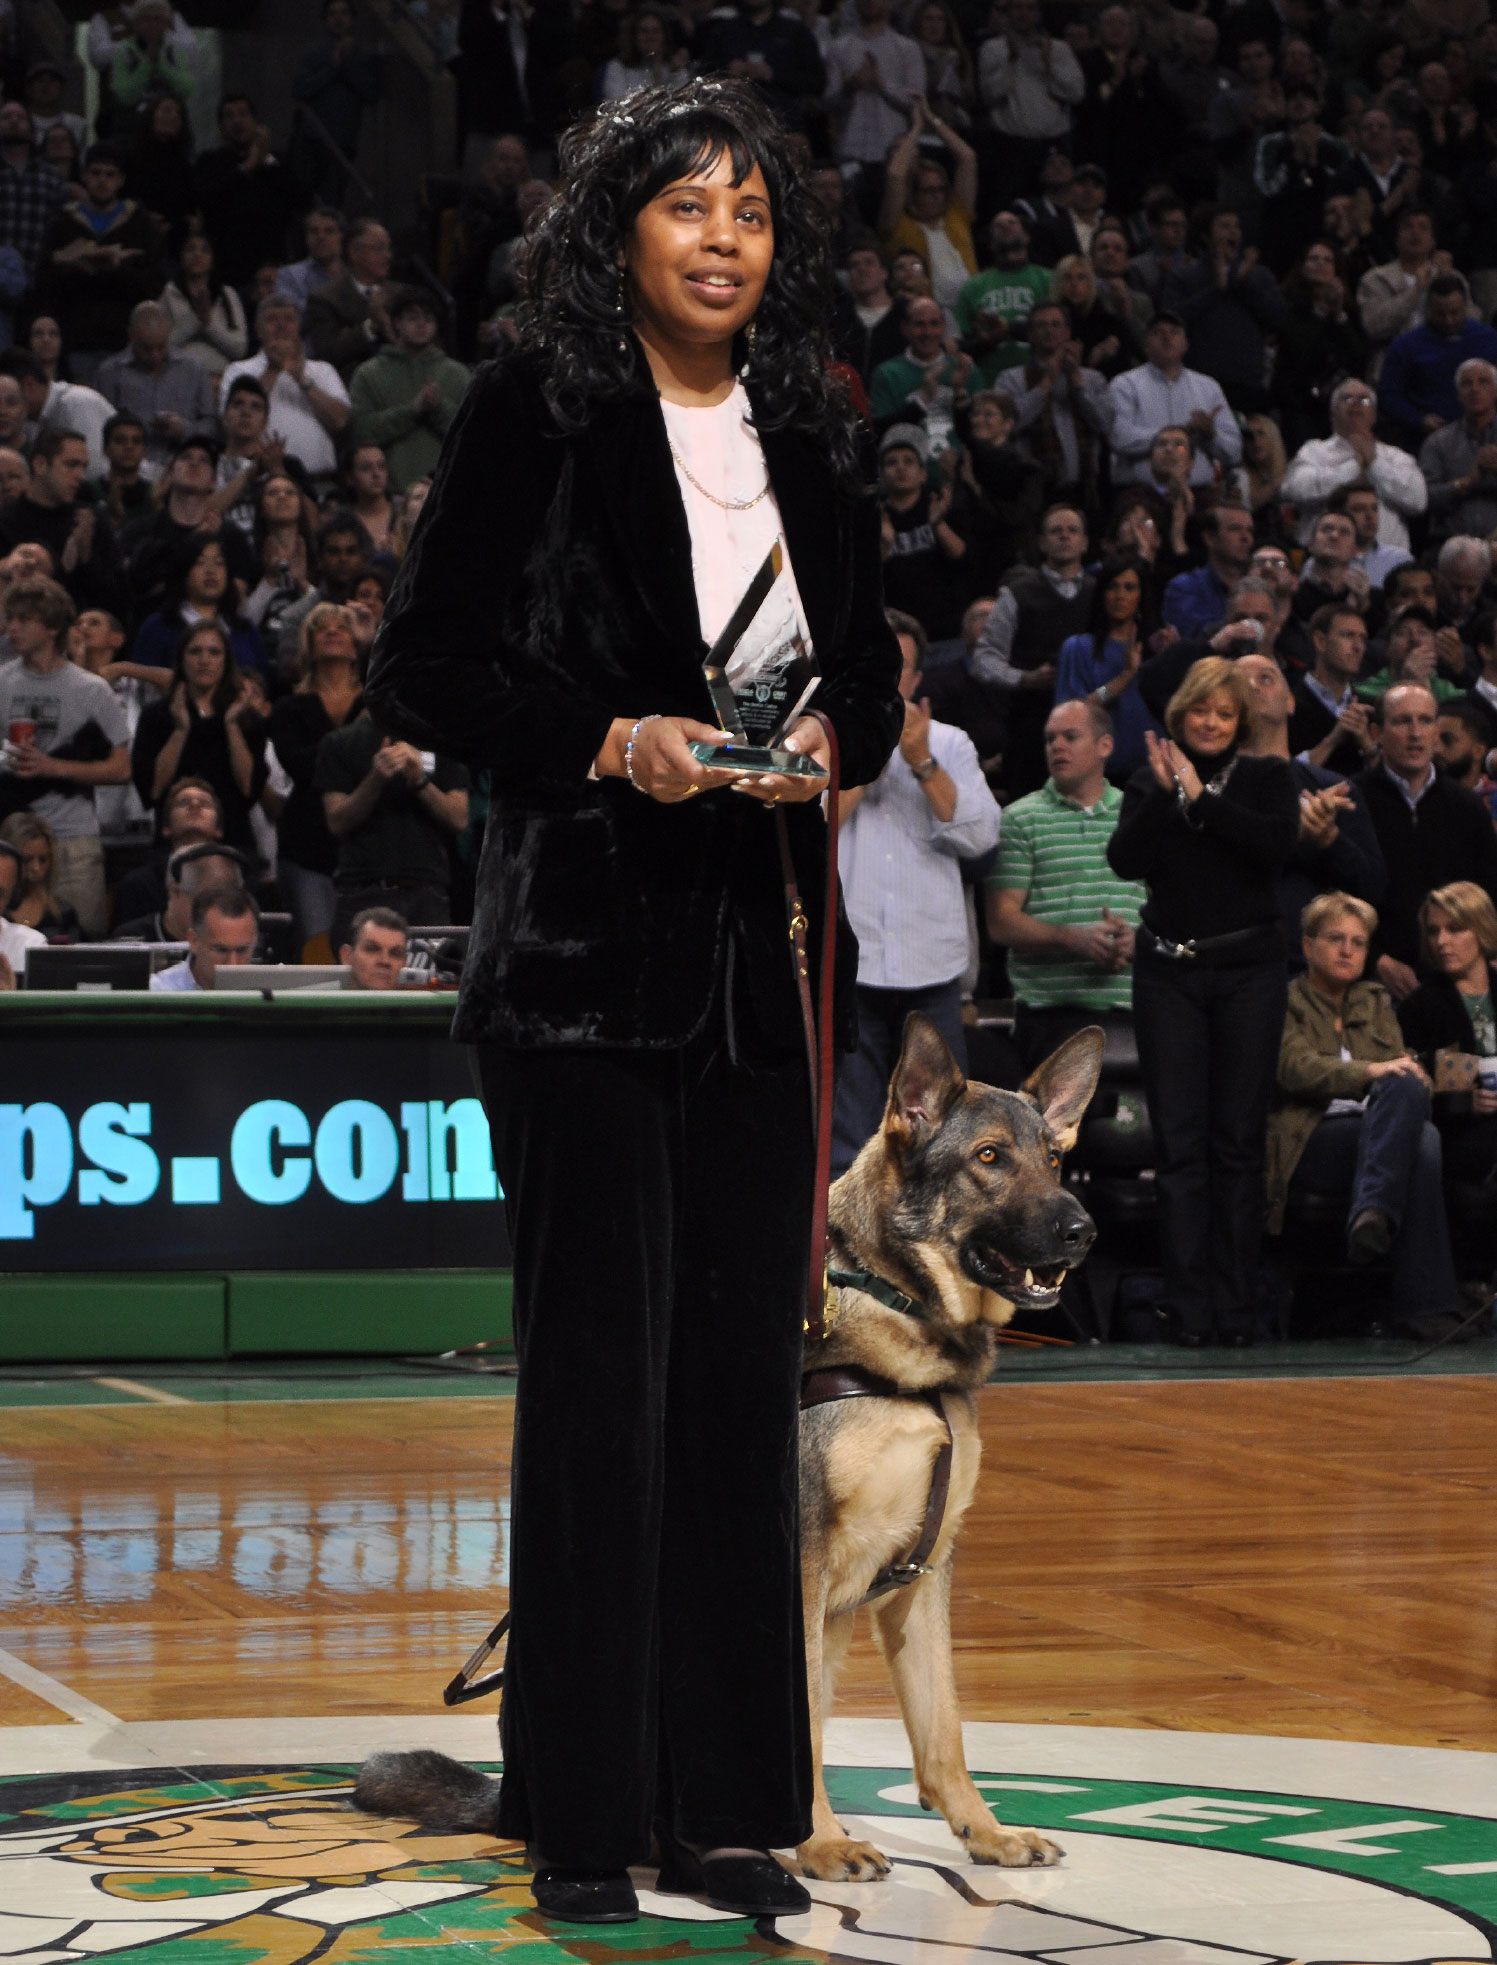 """Janet and her guide dog, Osbourne, receiving the """"Heroes Among Us"""" award from the Boston Celtics and Perkins School for the Blind.  Photo courtesy of Perkins School for the Blind."""